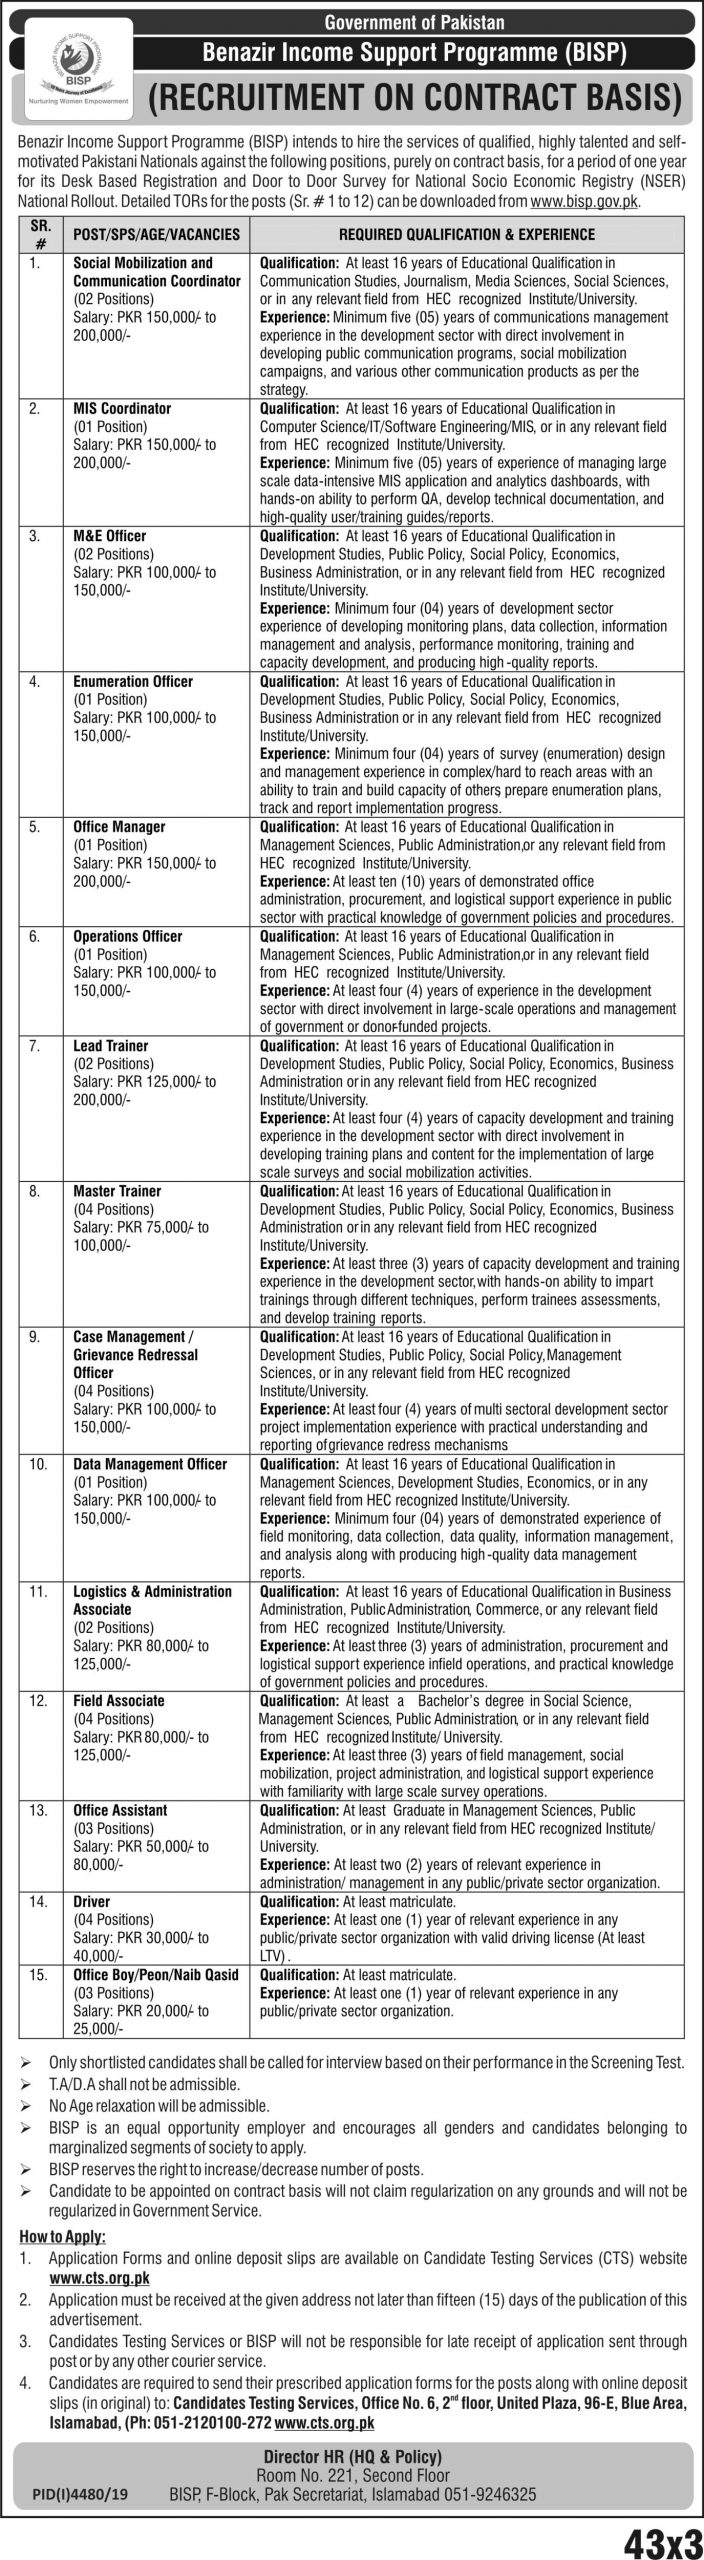 Benazir Income Support Programme Jobs 2020 CTS Application Form Eligibility Criteria